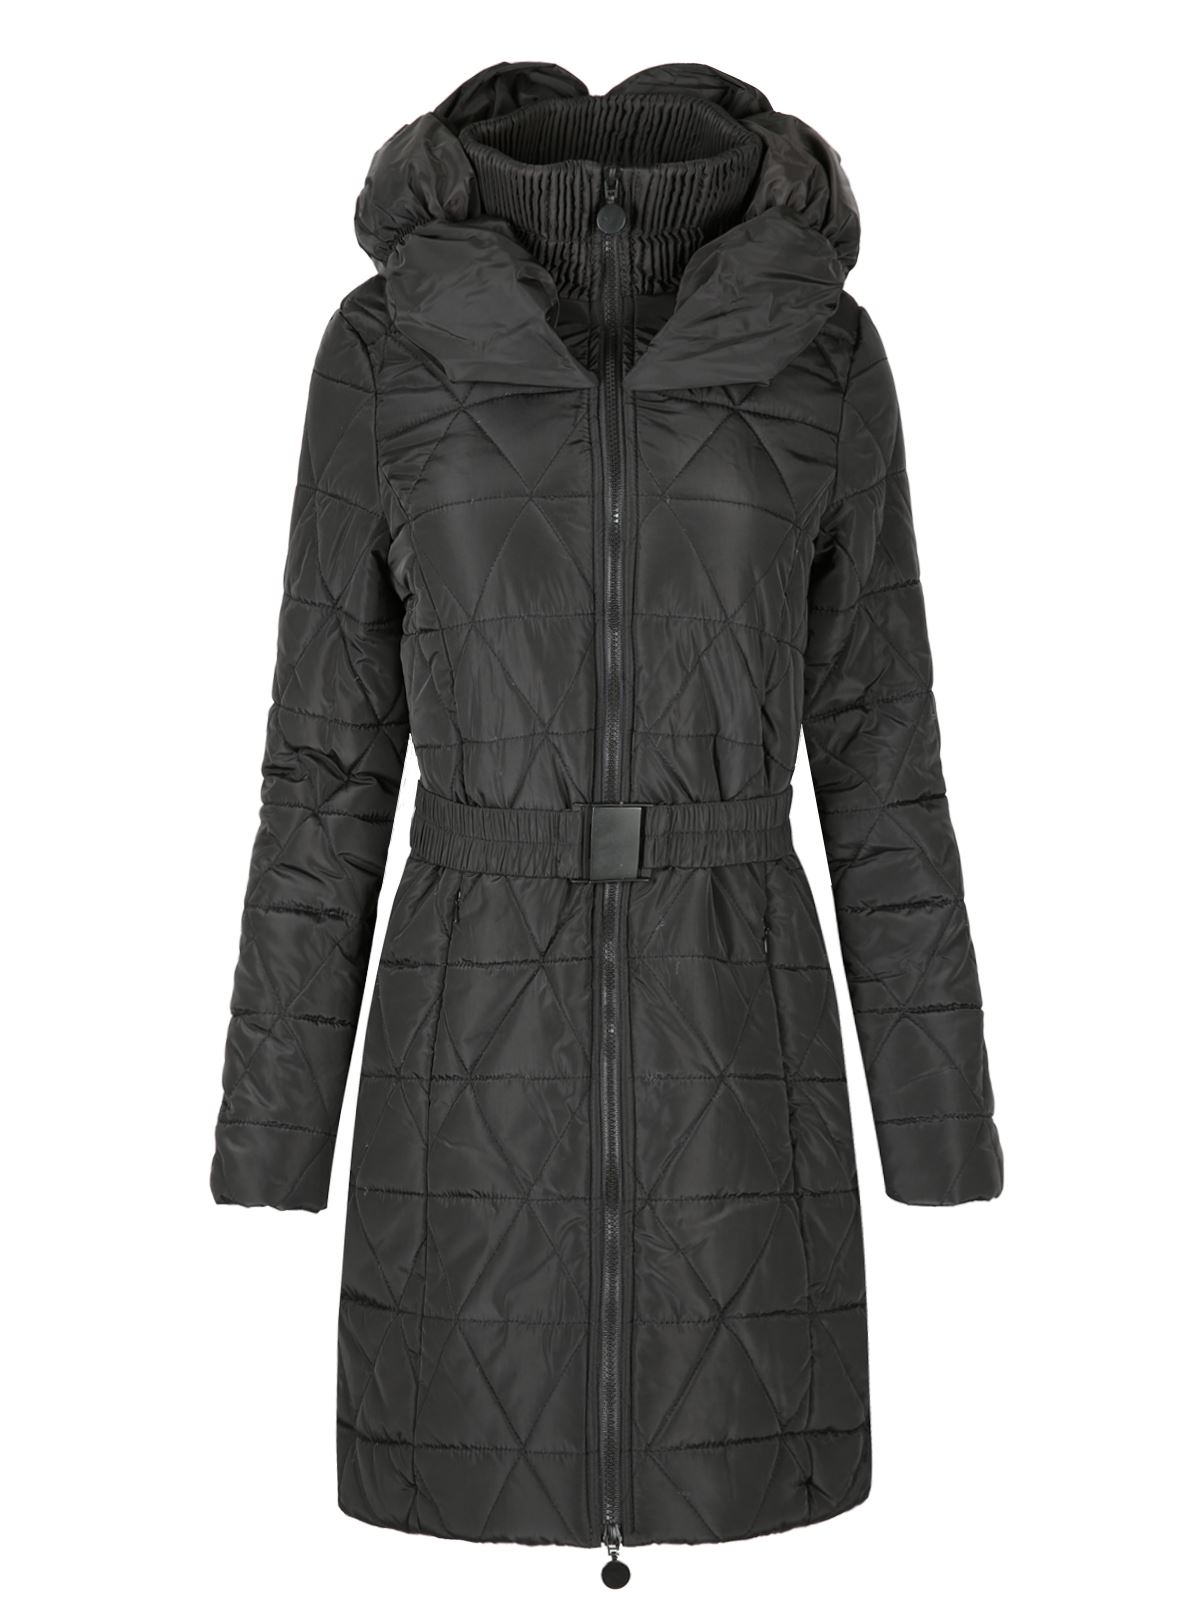 Womens down coats long